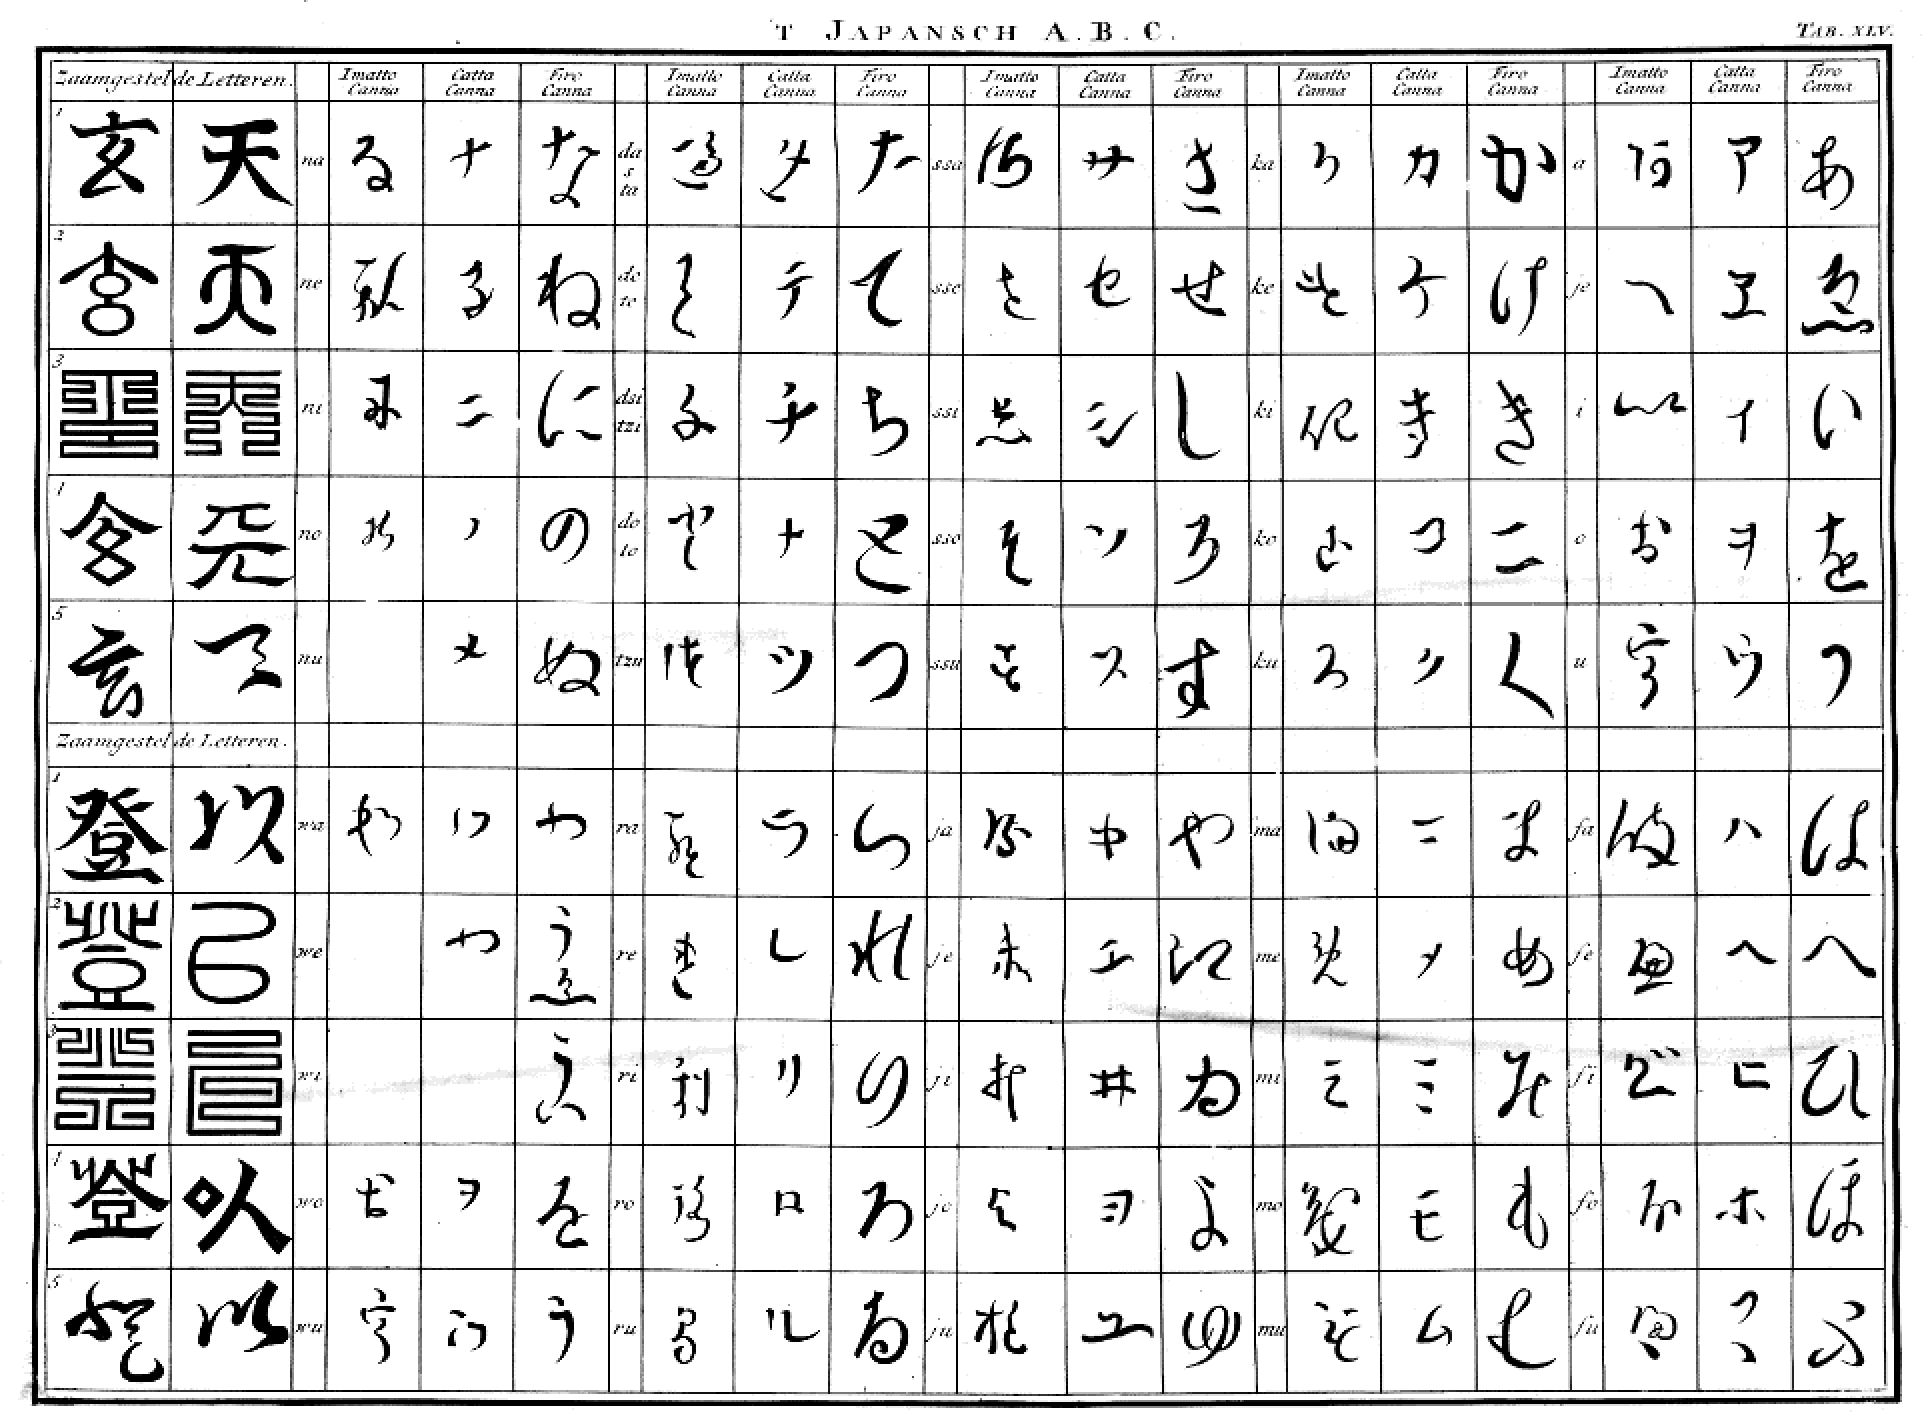 File:Japanese alphabet by Engelbert Kaempfer 1690-1693.jpg - Wikipedia ...